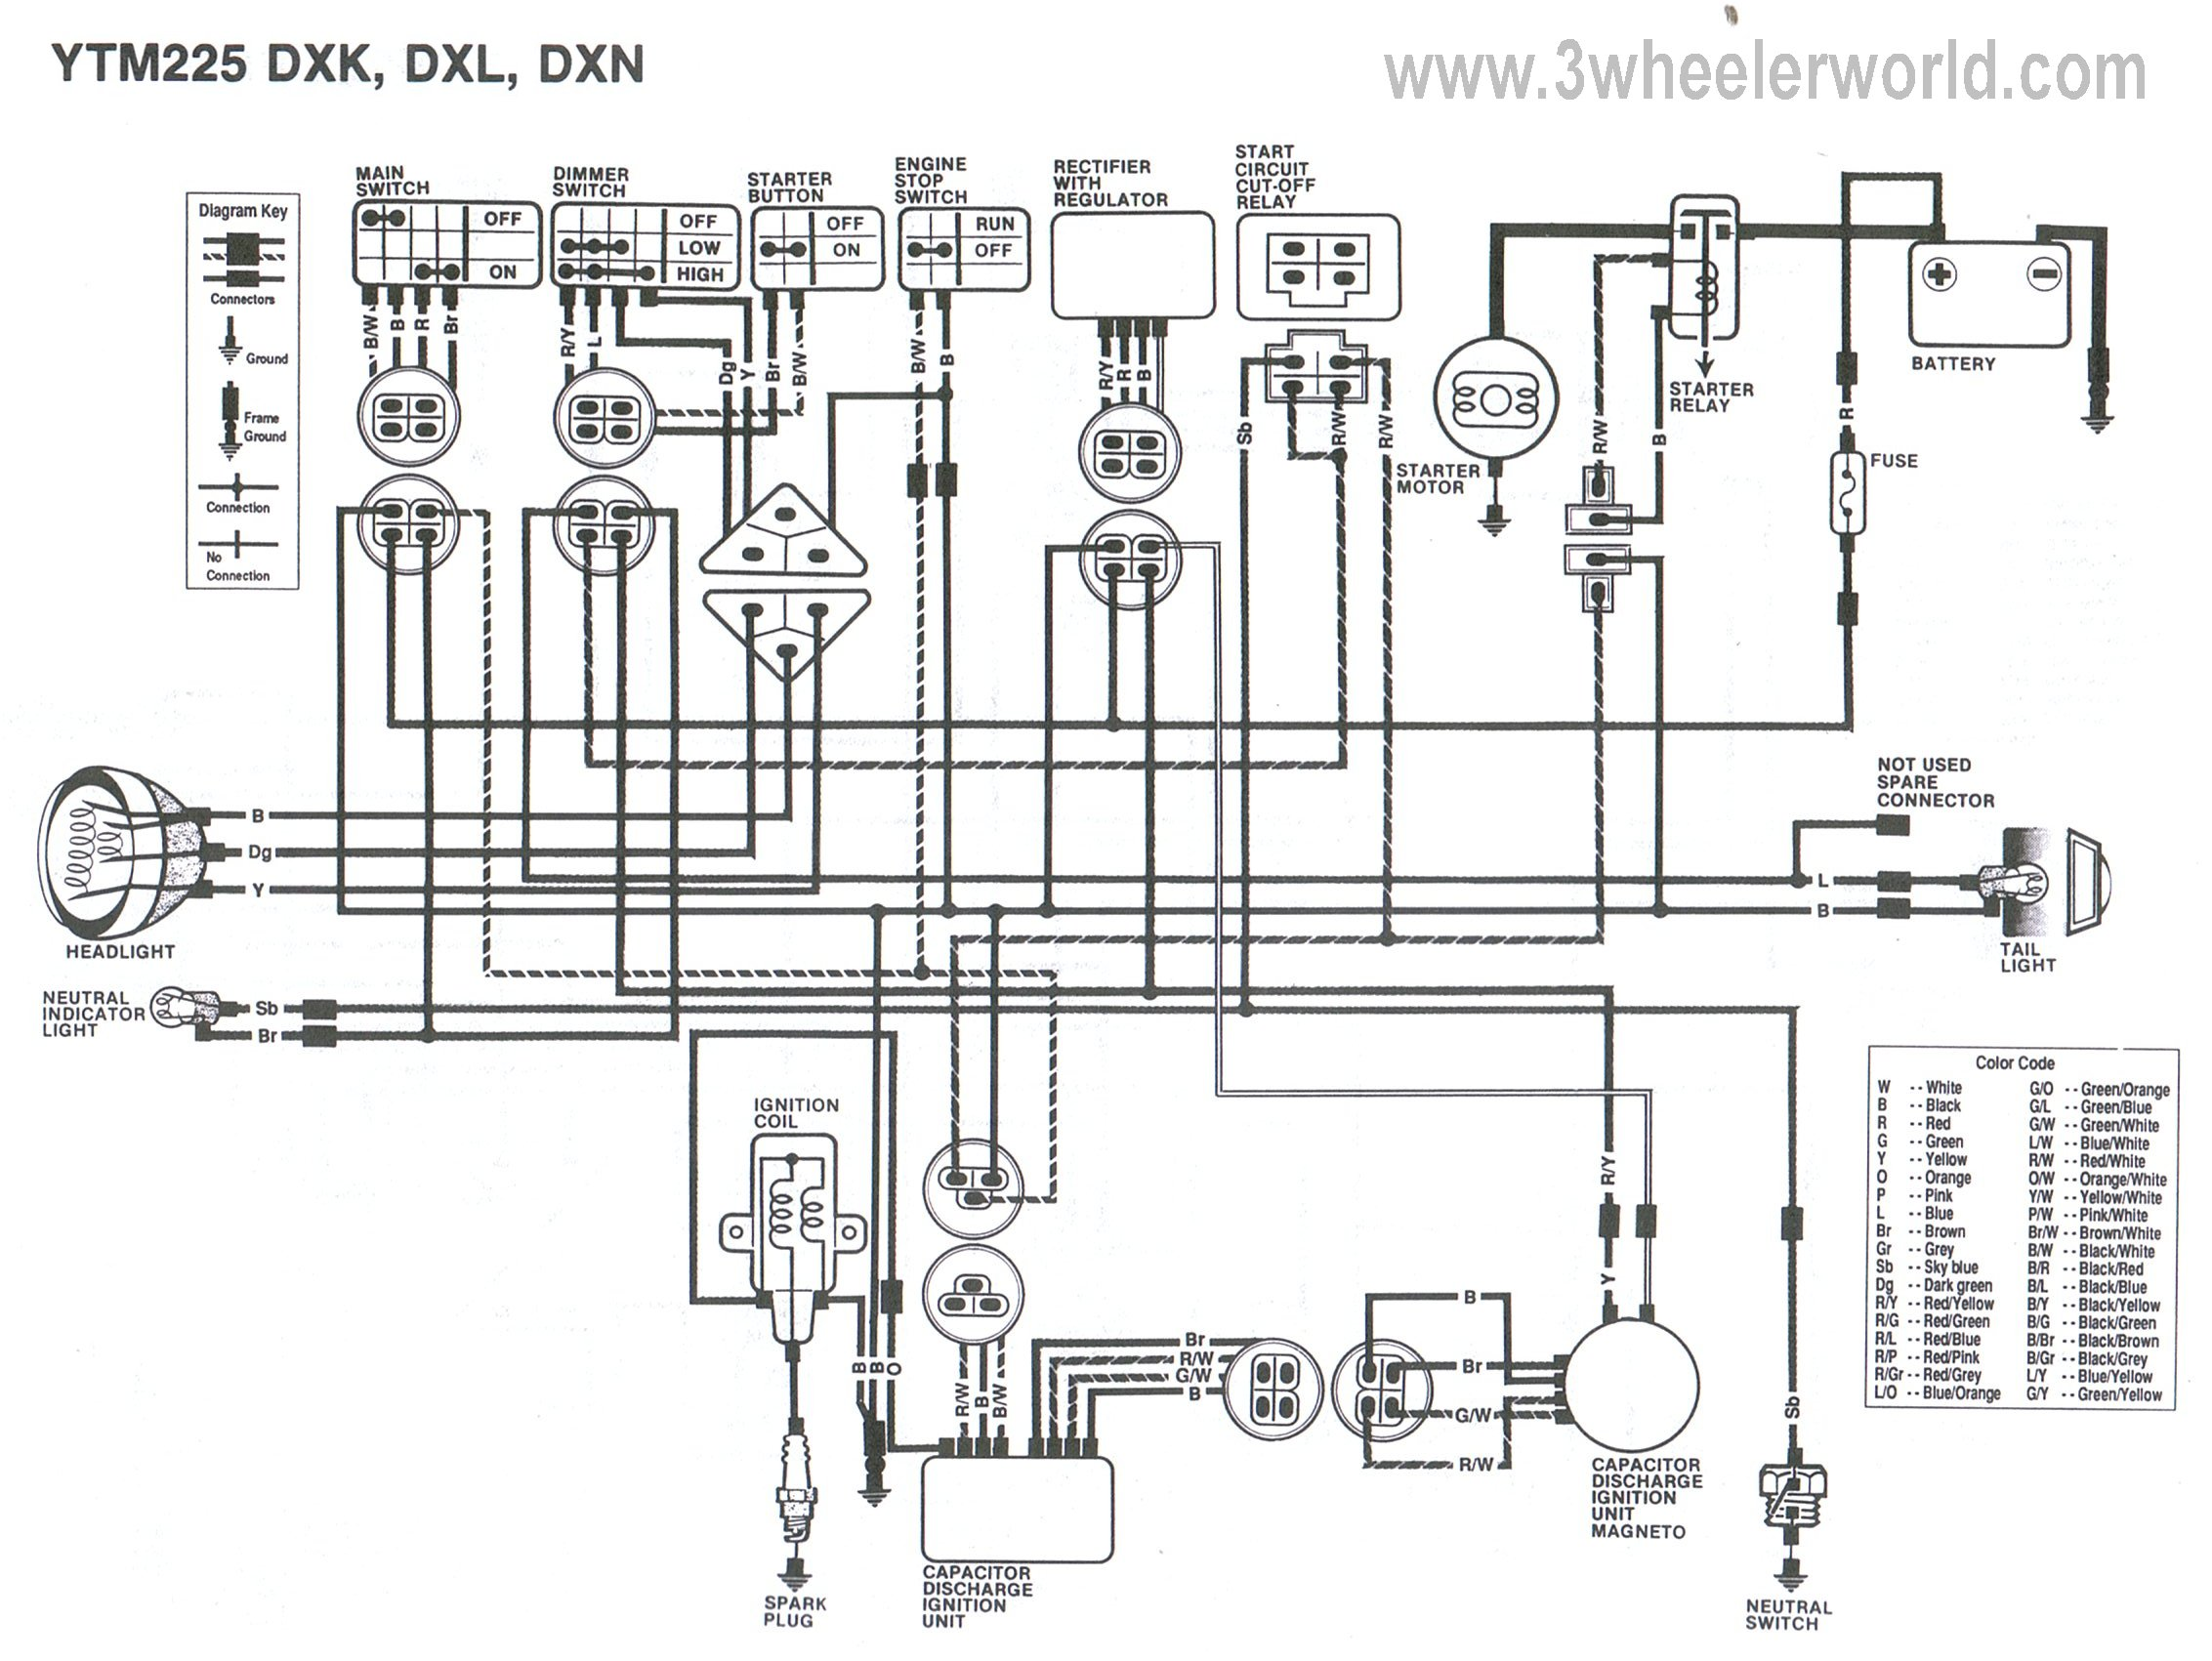 YTM225DXKDXLDXN 3 wheeler world tech help yamaha wiring diagrams 1986 yamaha moto 4 200 wiring schematic at bayanpartner.co